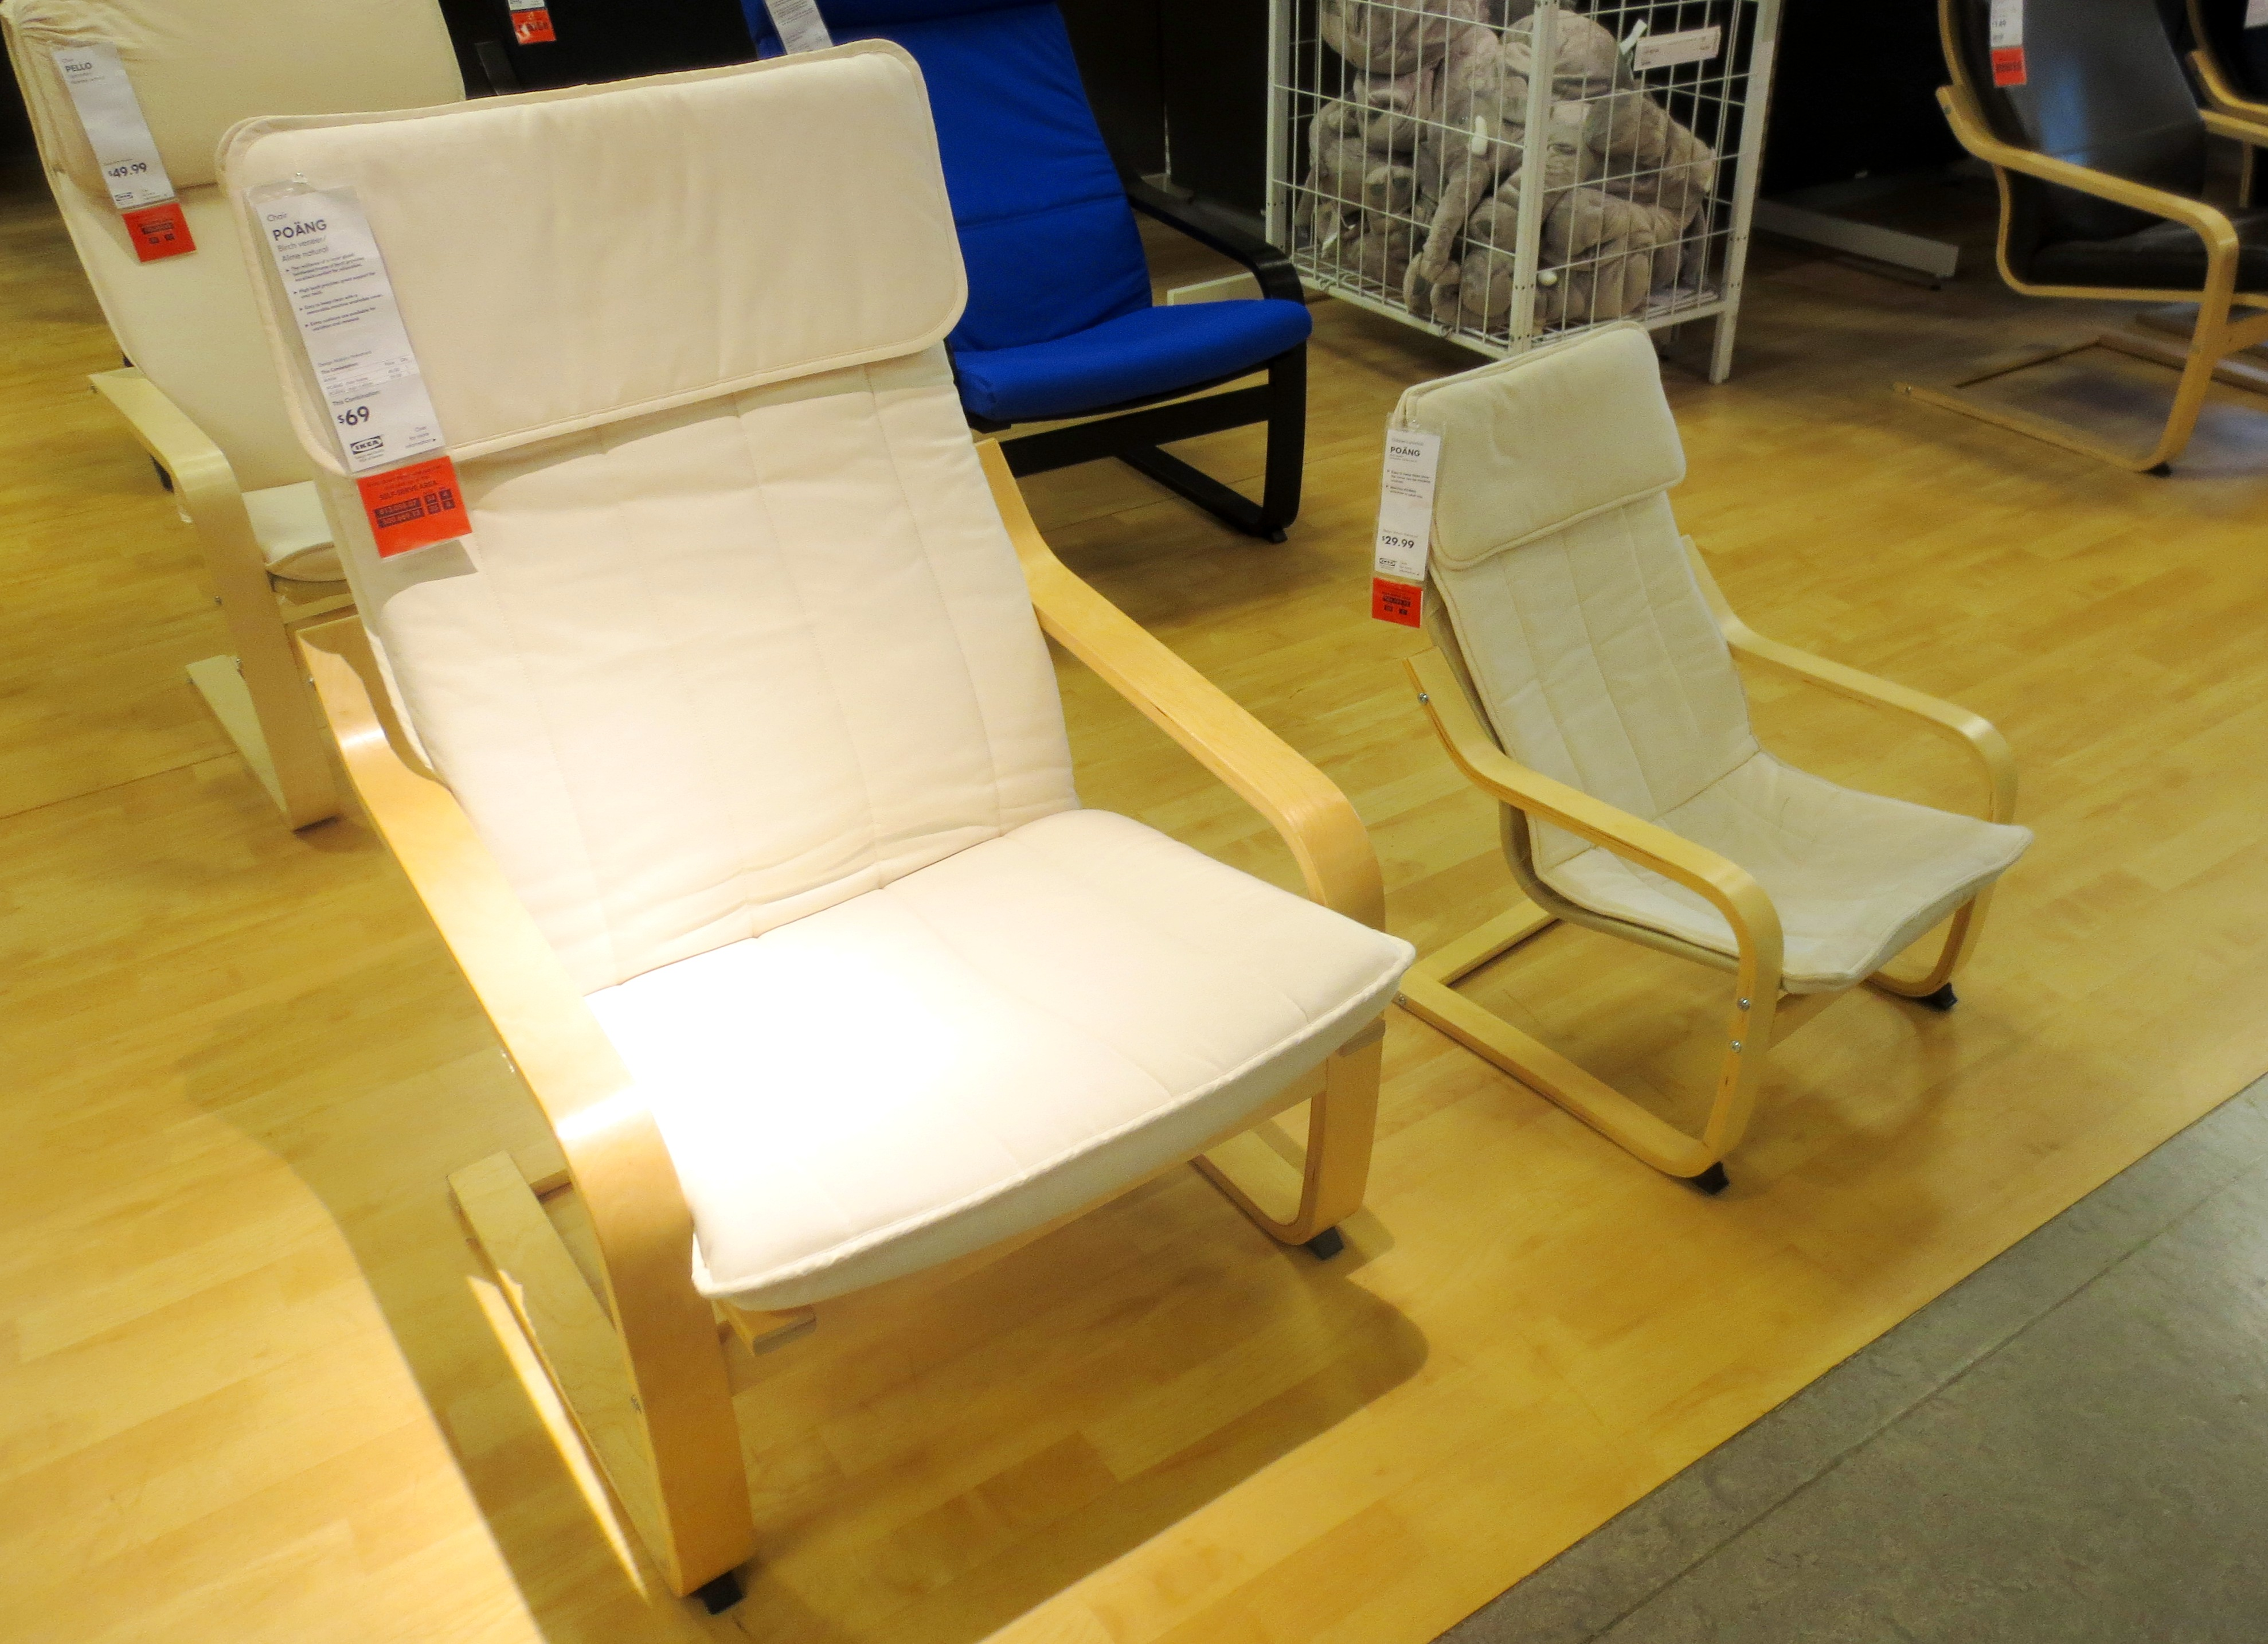 Ikea Poang Chair For Nursing & Breastfeeding Chair Ikea Poang Ikea Poang Chair For Nursing. PO NG ...